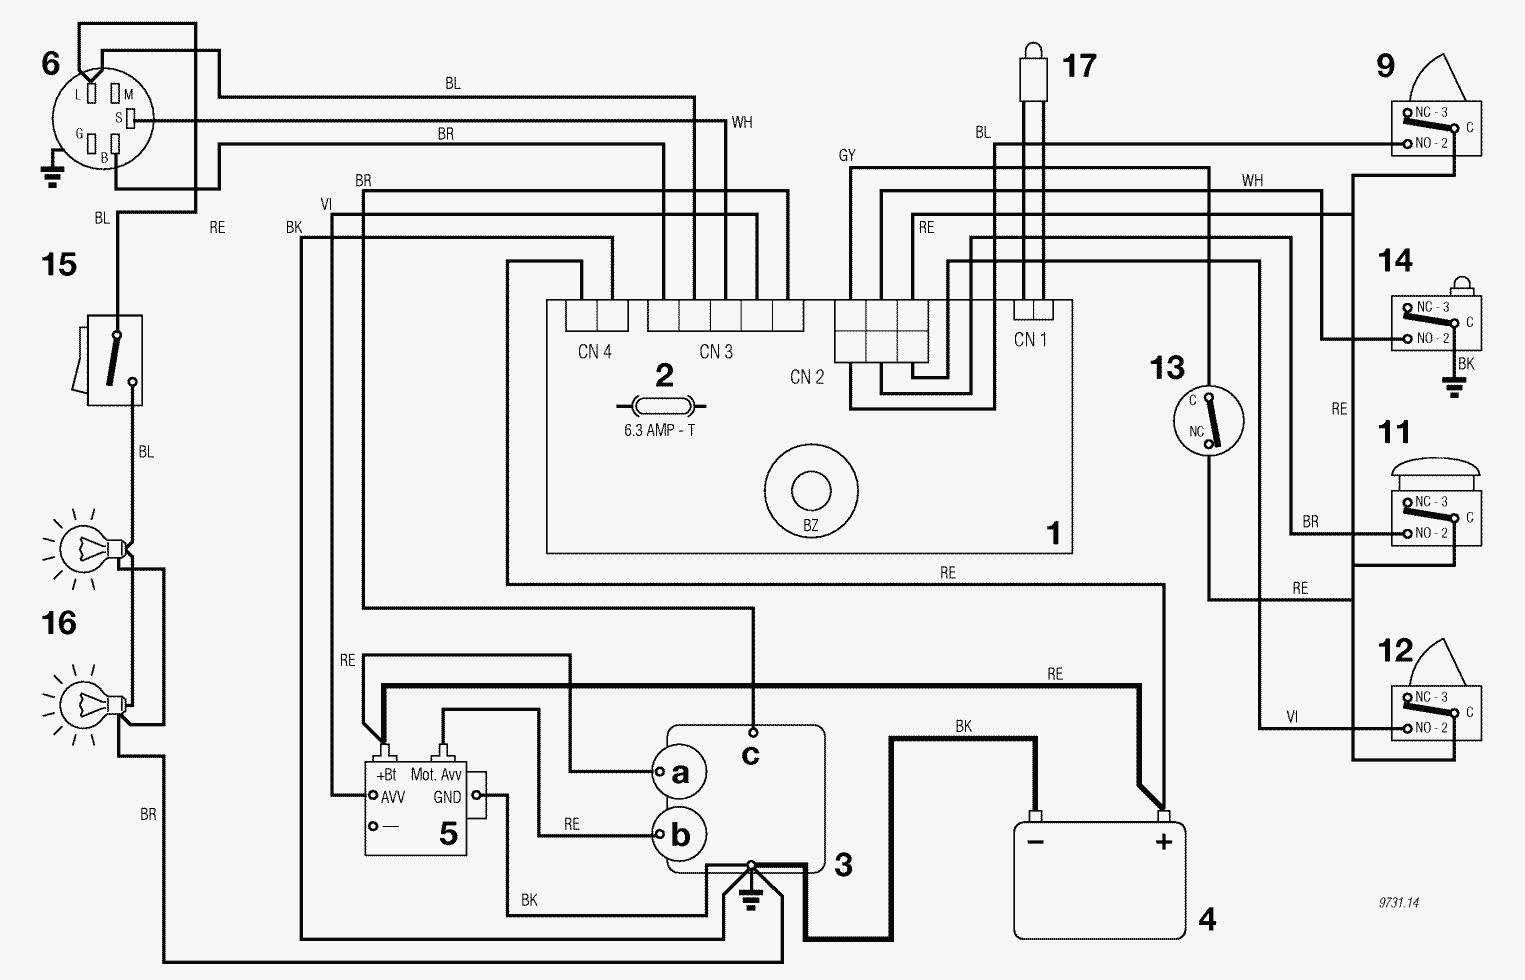 hight resolution of spare parts lists for solo lawn mower wire diagram 10 5 12 5 13 12 5 hp murray riding